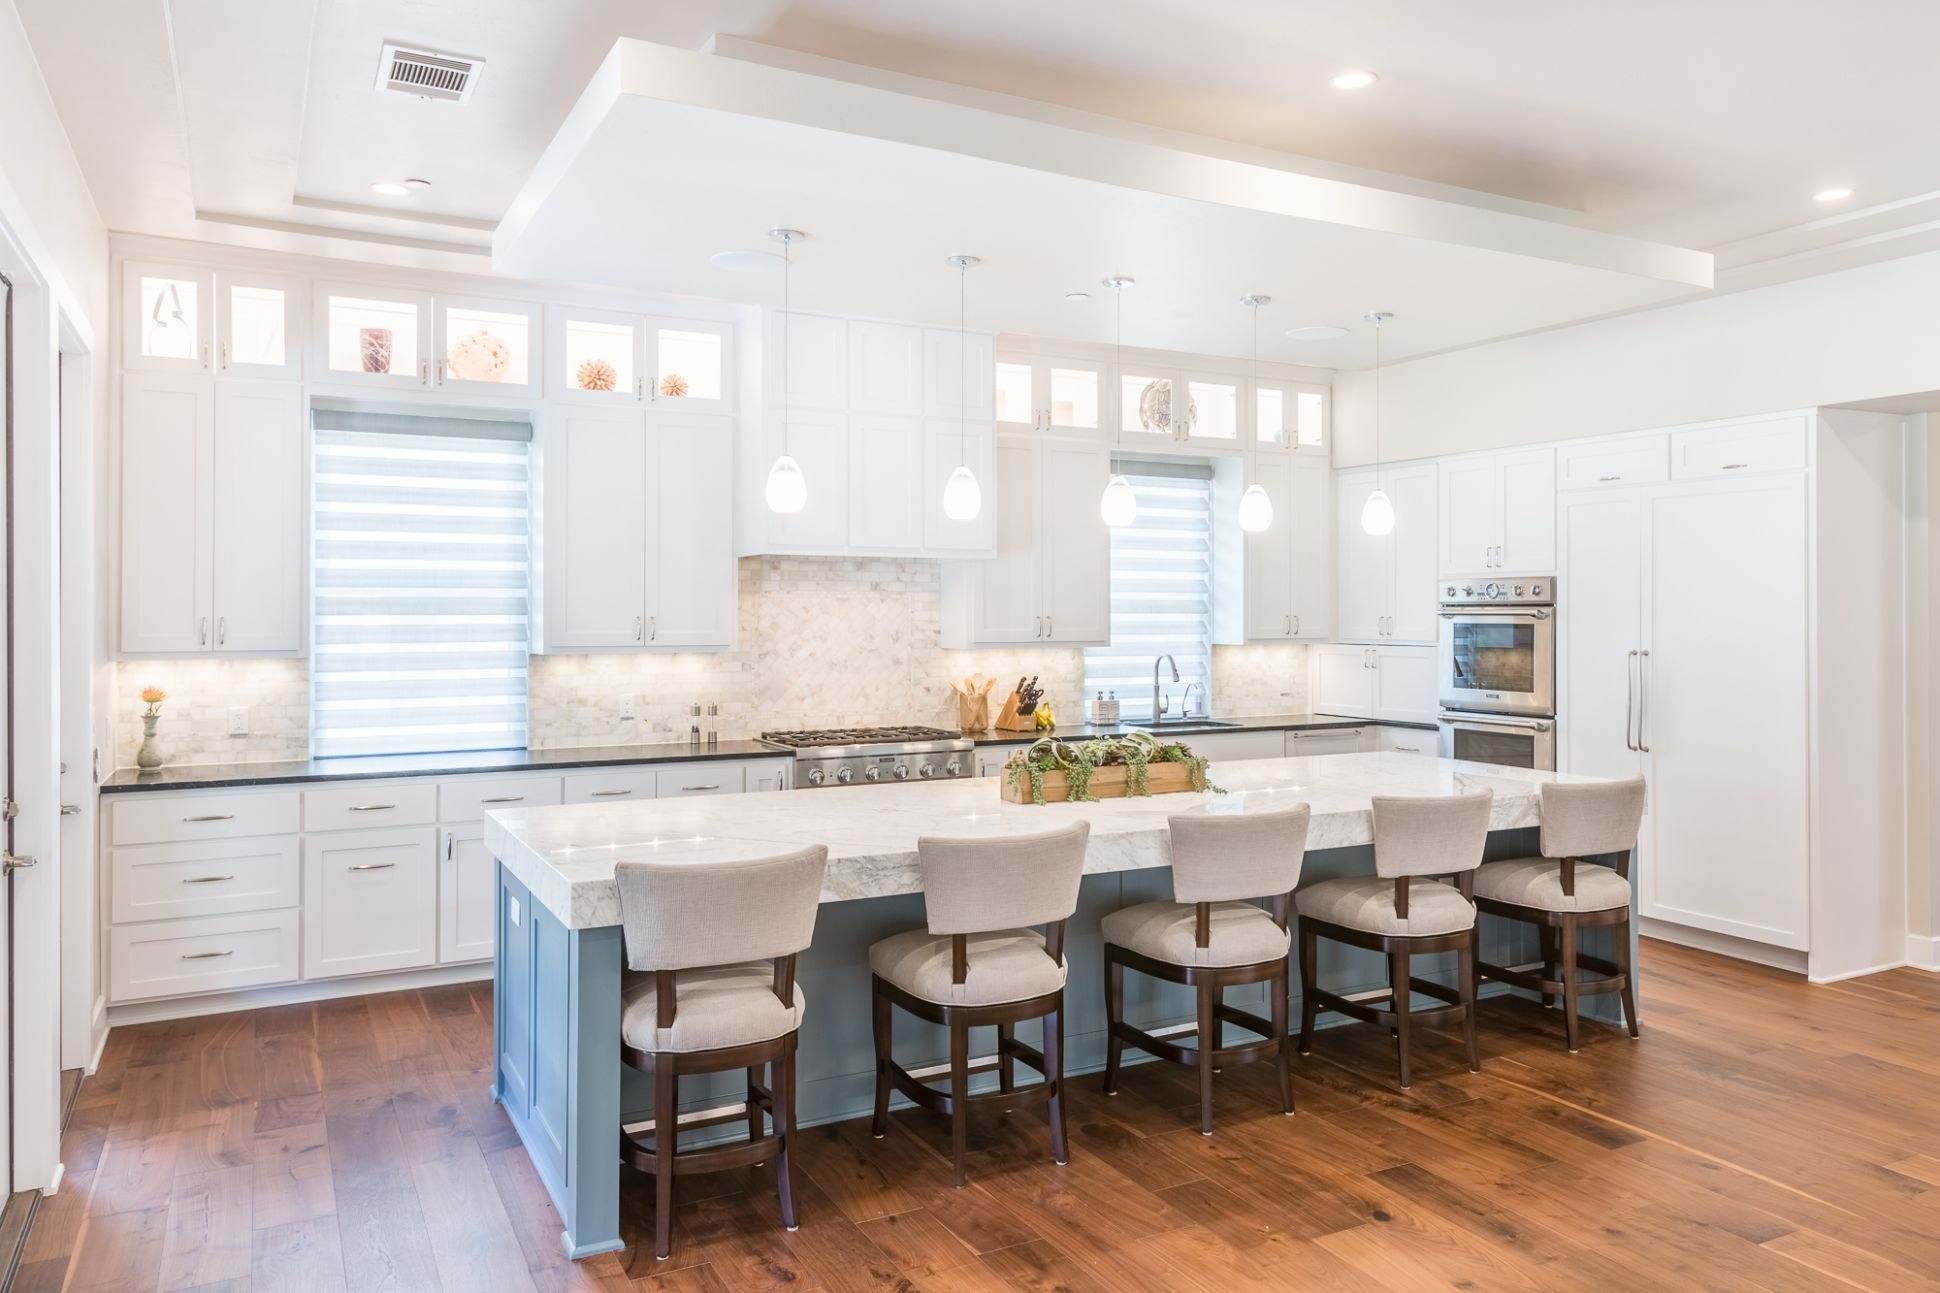 The Best 10 Design Ideas for Your New Kitchen - Jenkins Custom Homes - kitchen ideas new